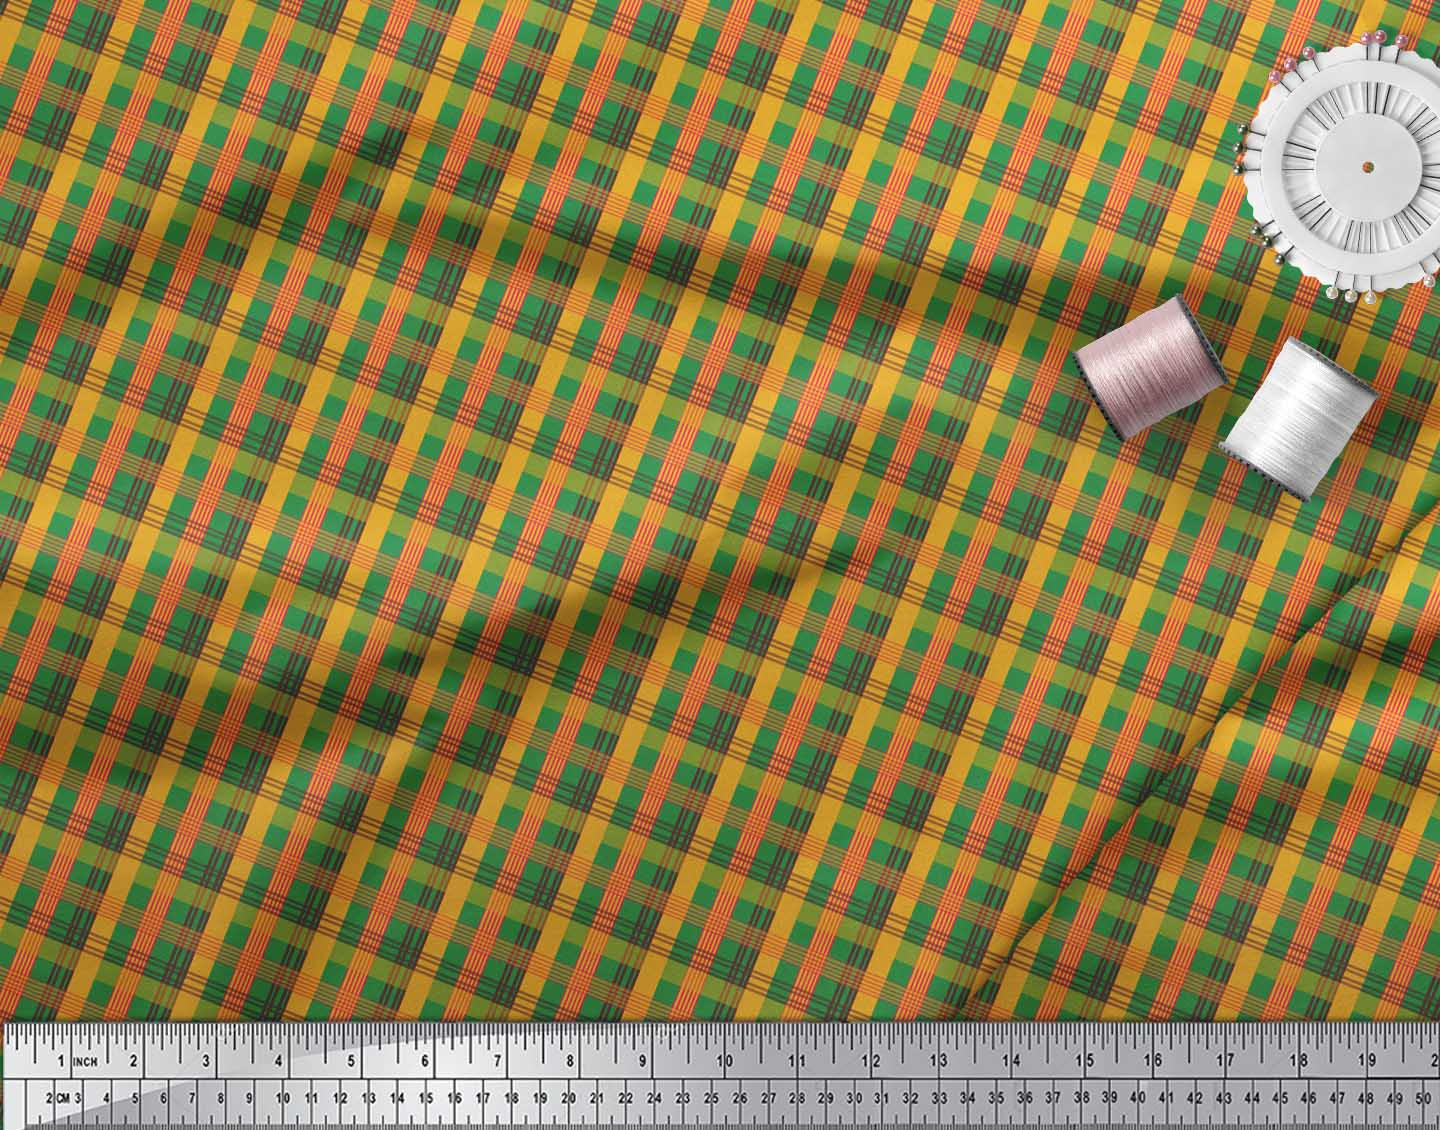 Soimoi-Green-Cotton-Poplin-Fabric-Check-Check-Print-Sewing-Fabric-owd thumbnail 4